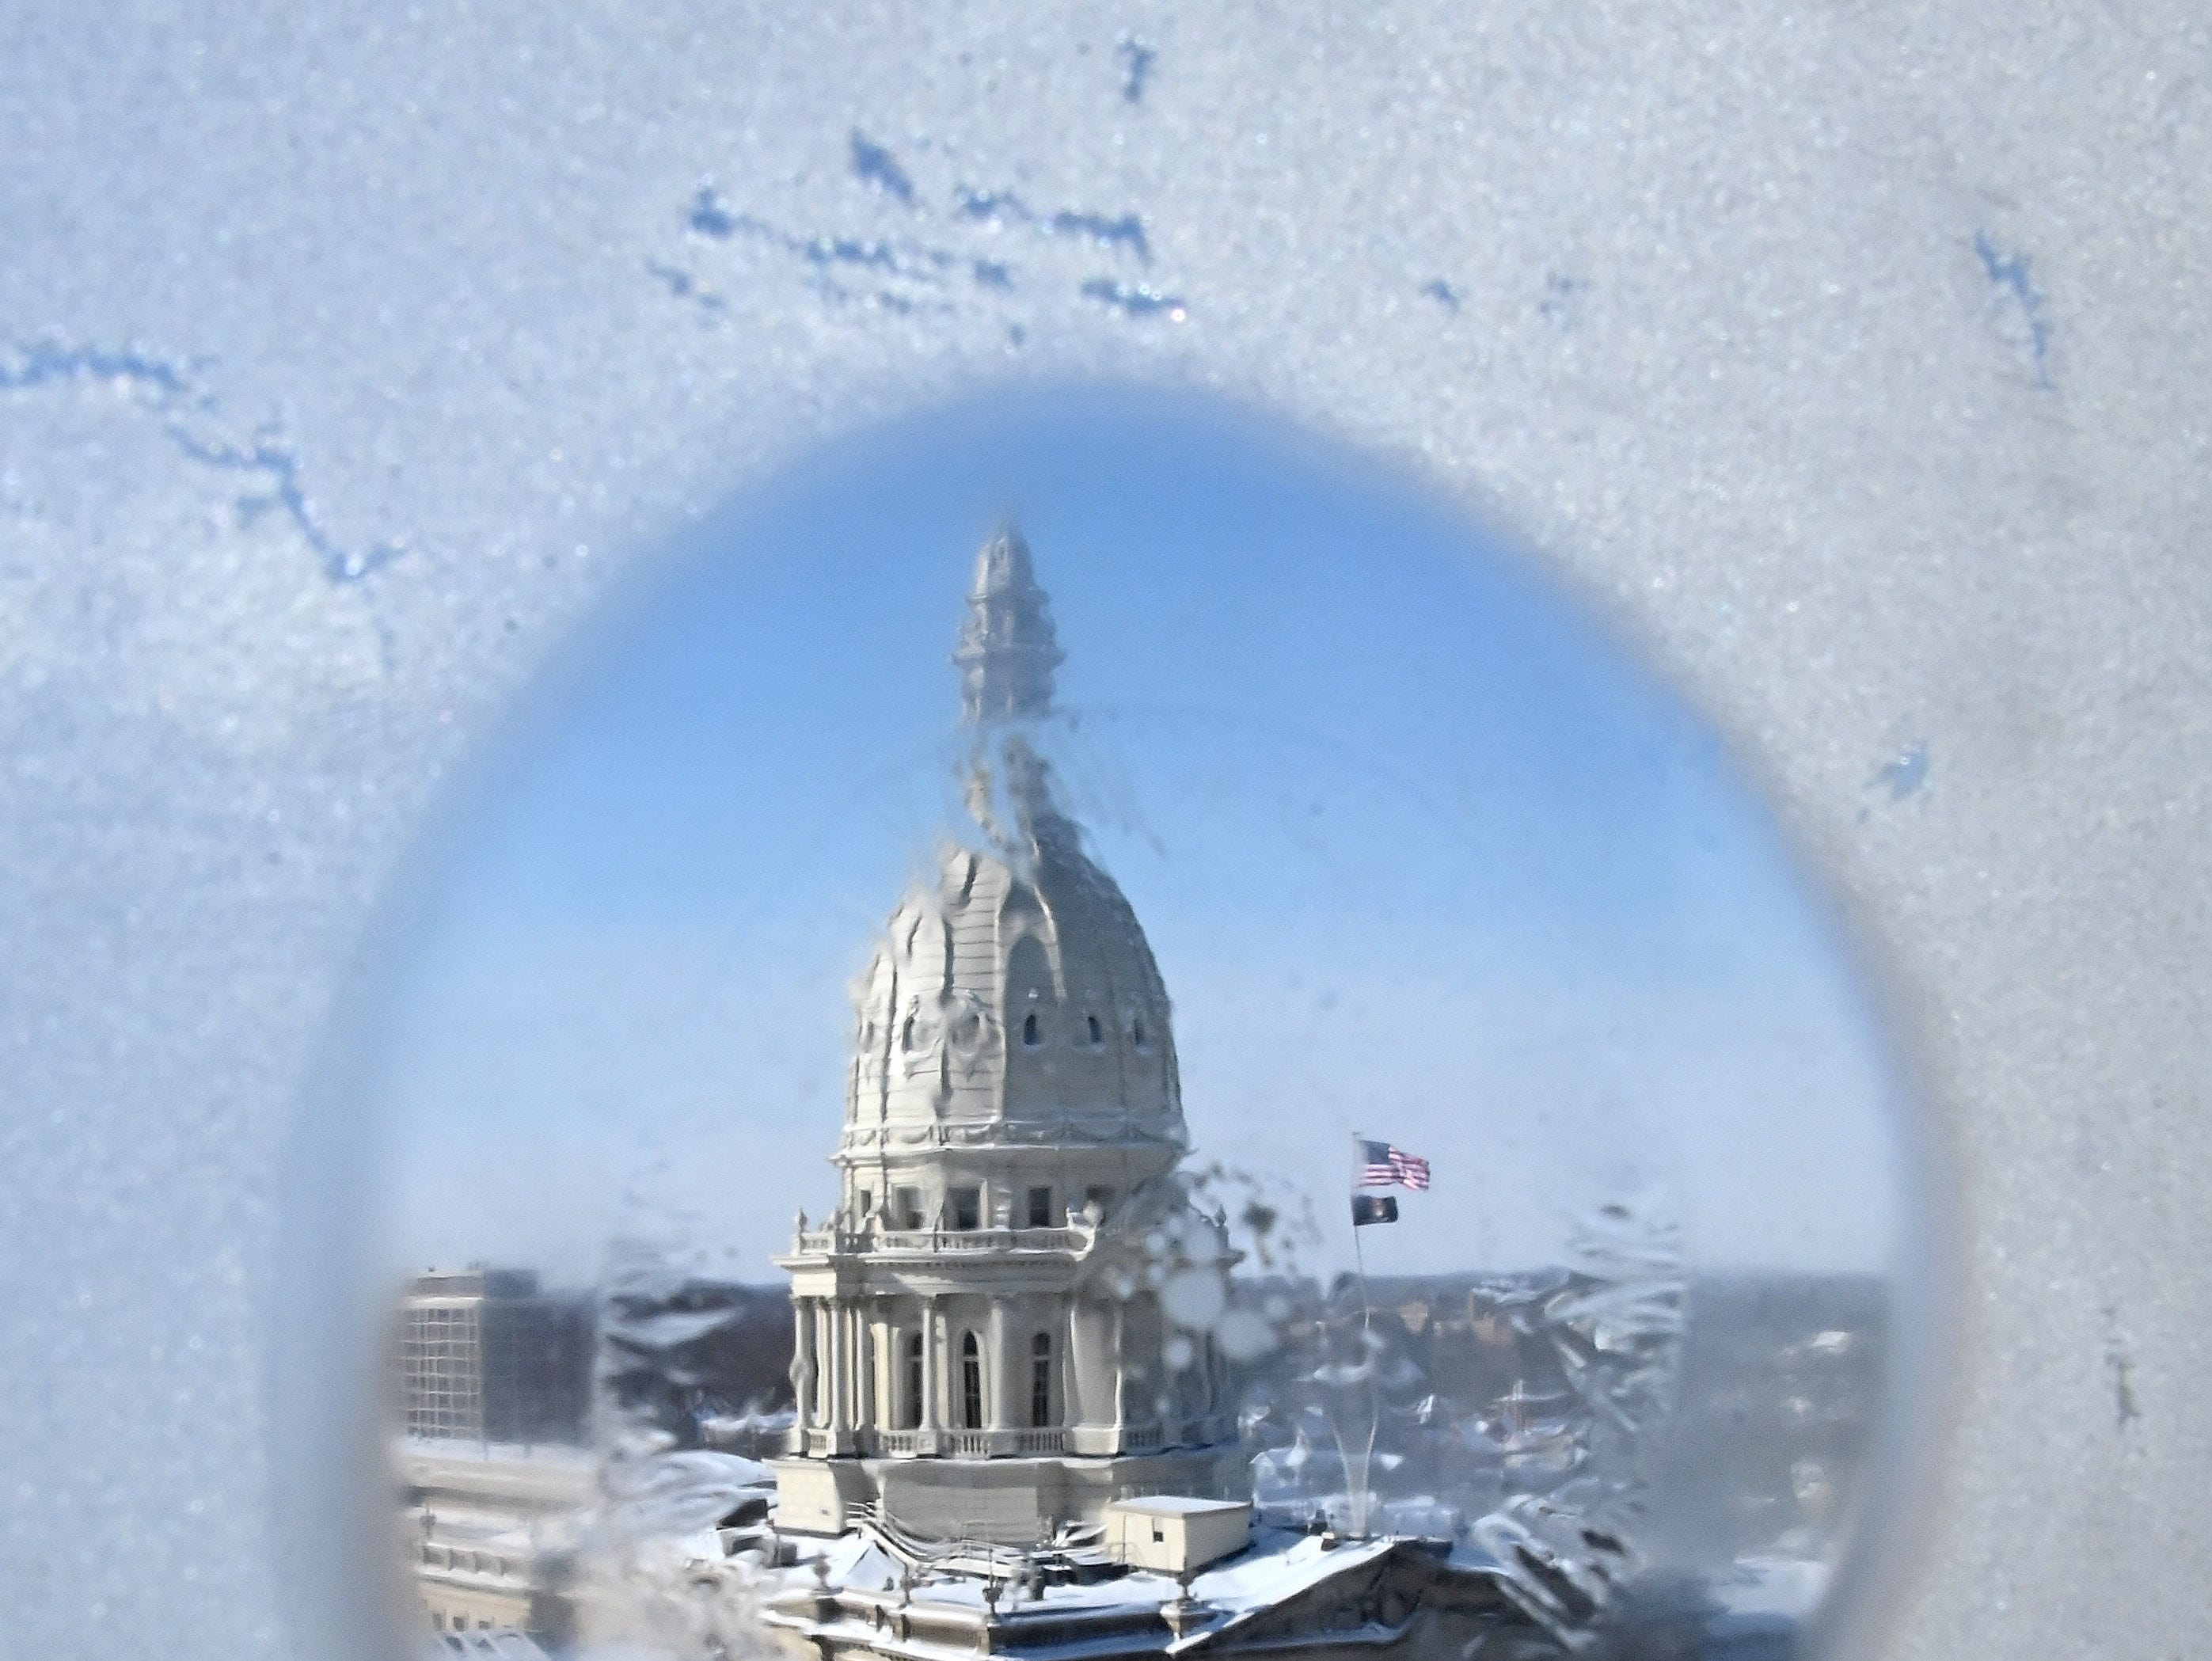 The Michigan Capitol building sits idle after extreme cold weather (minus 27 degrees counting the wind chill) prompted a governmental shutdown until Friday.  Here, the Capitol is seen through a frost-coated window in the Lansing bureau of The Detroit News on Wednesday afternoon, Jan. 30, 2019